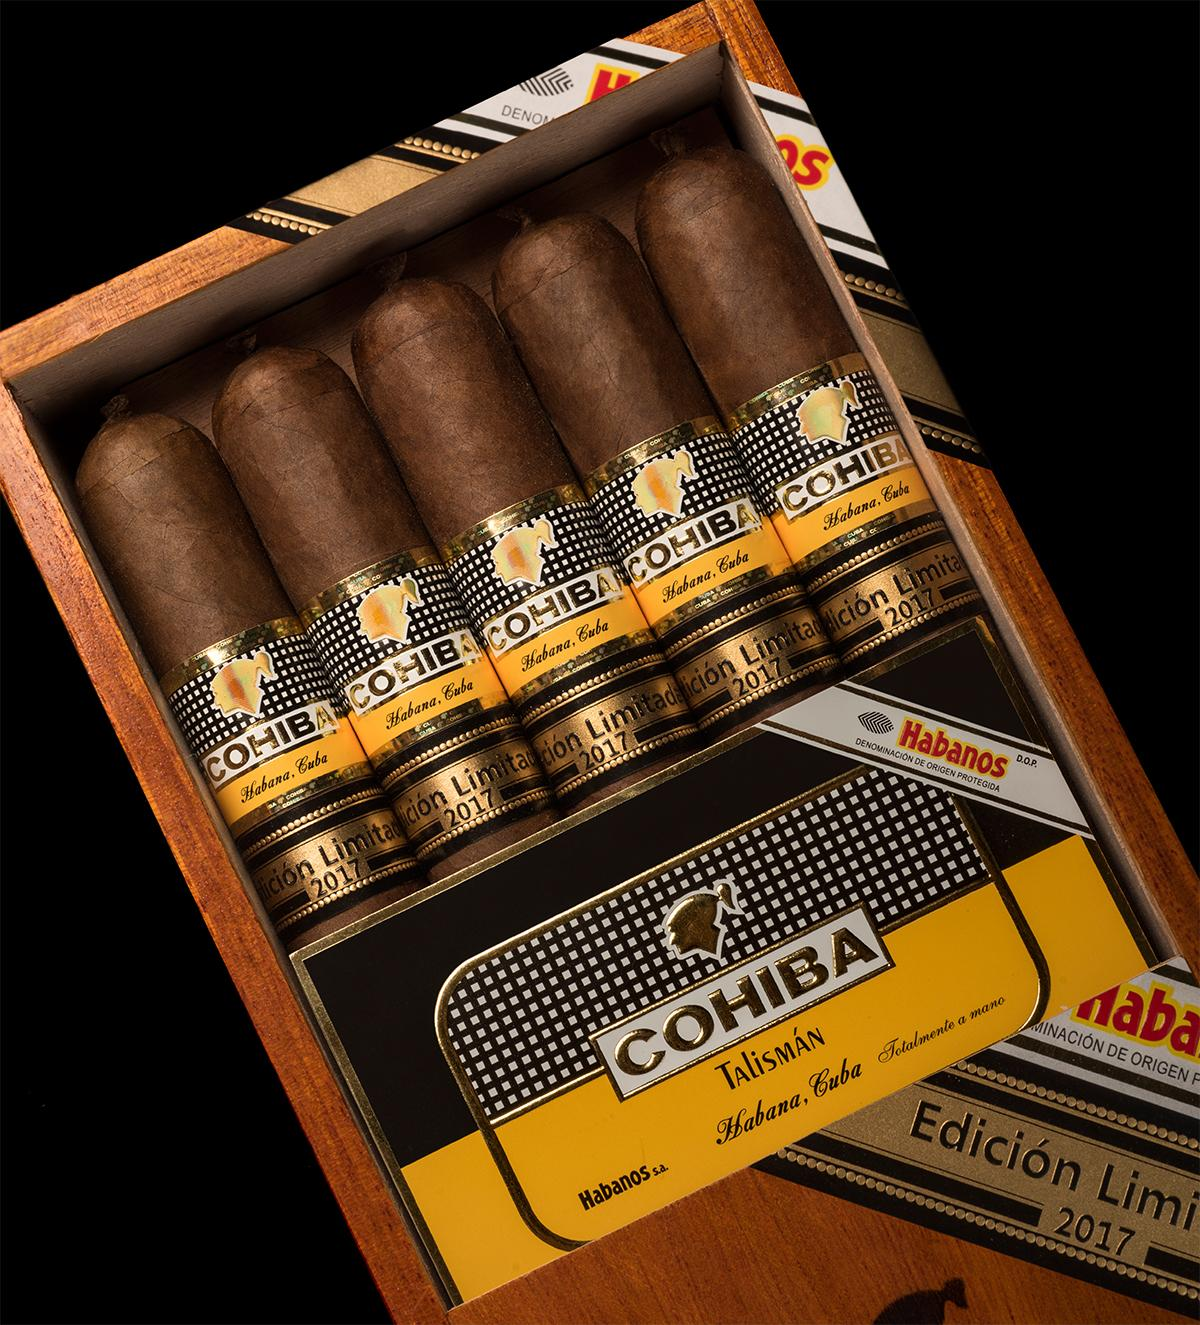 The Cohiba Talismán is fairly fat for a Cuban cigar, with a 54 ring gauge and a length of 6 1/8 inches.